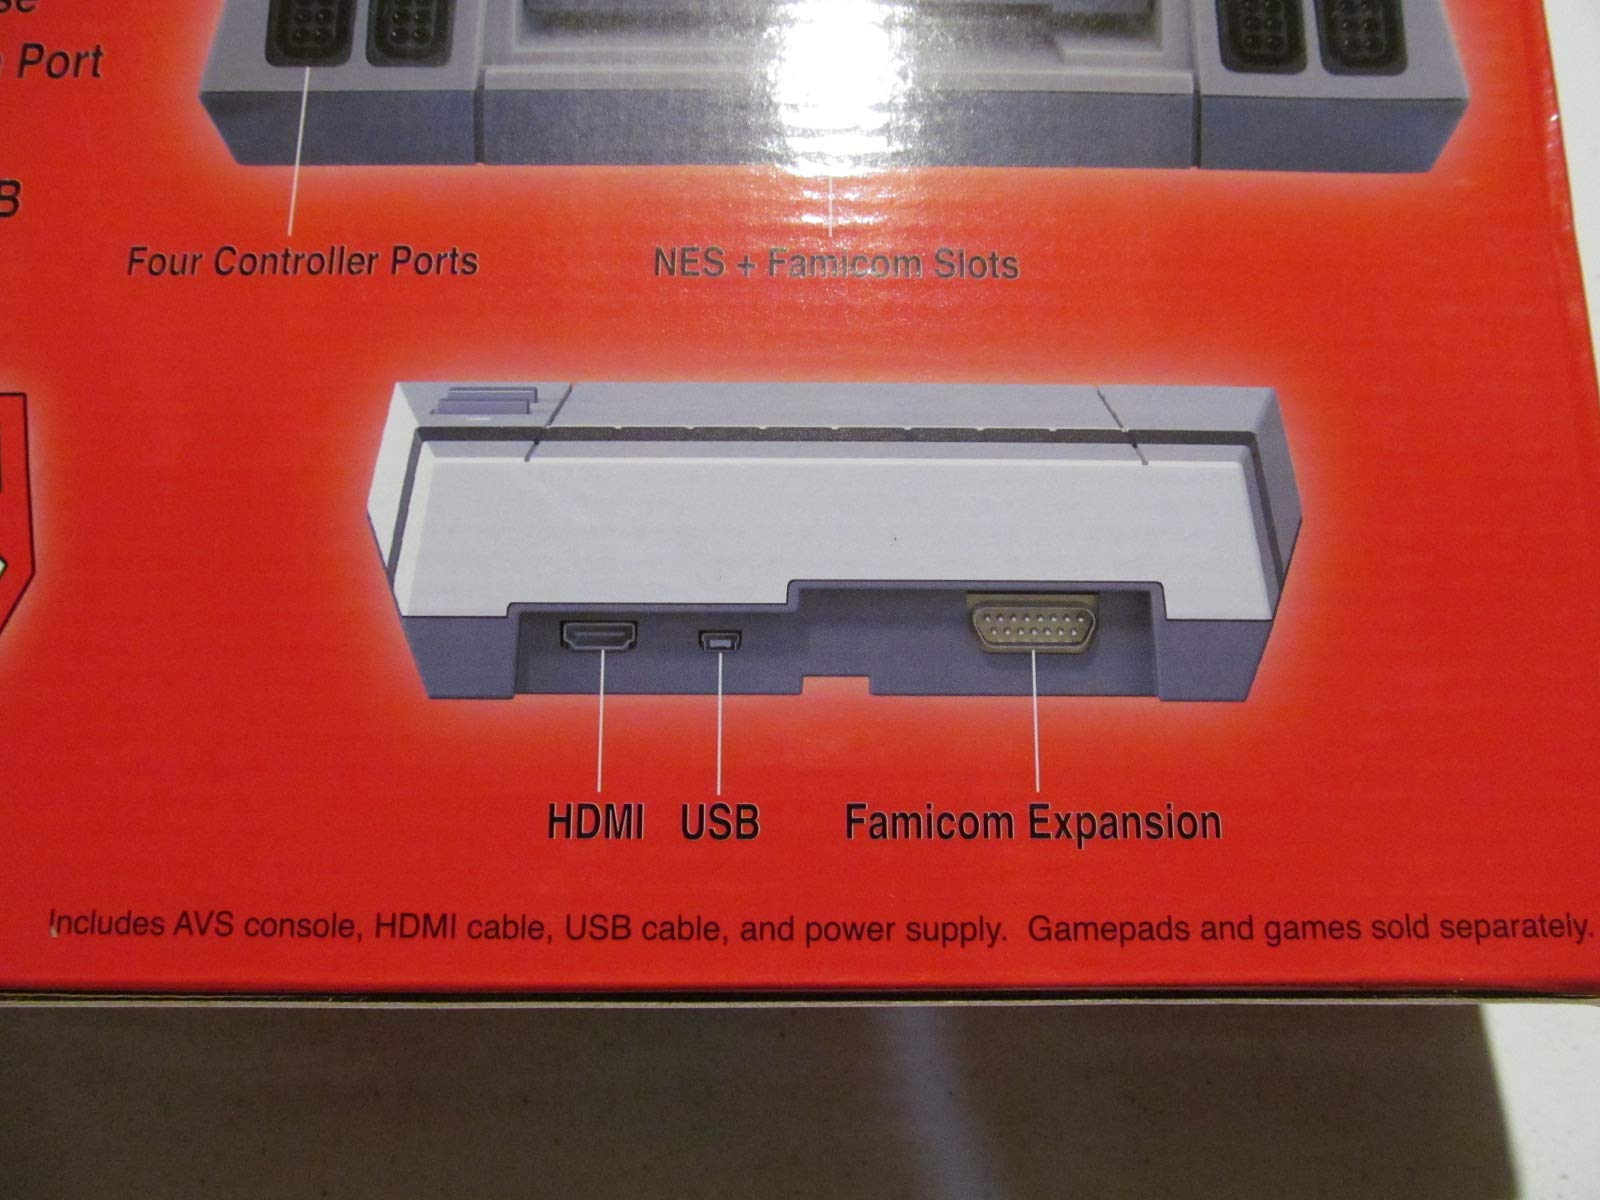 AVS Advanced Video System Console, play NES Nintendo Entertainment System cartridges in HD via HDMI